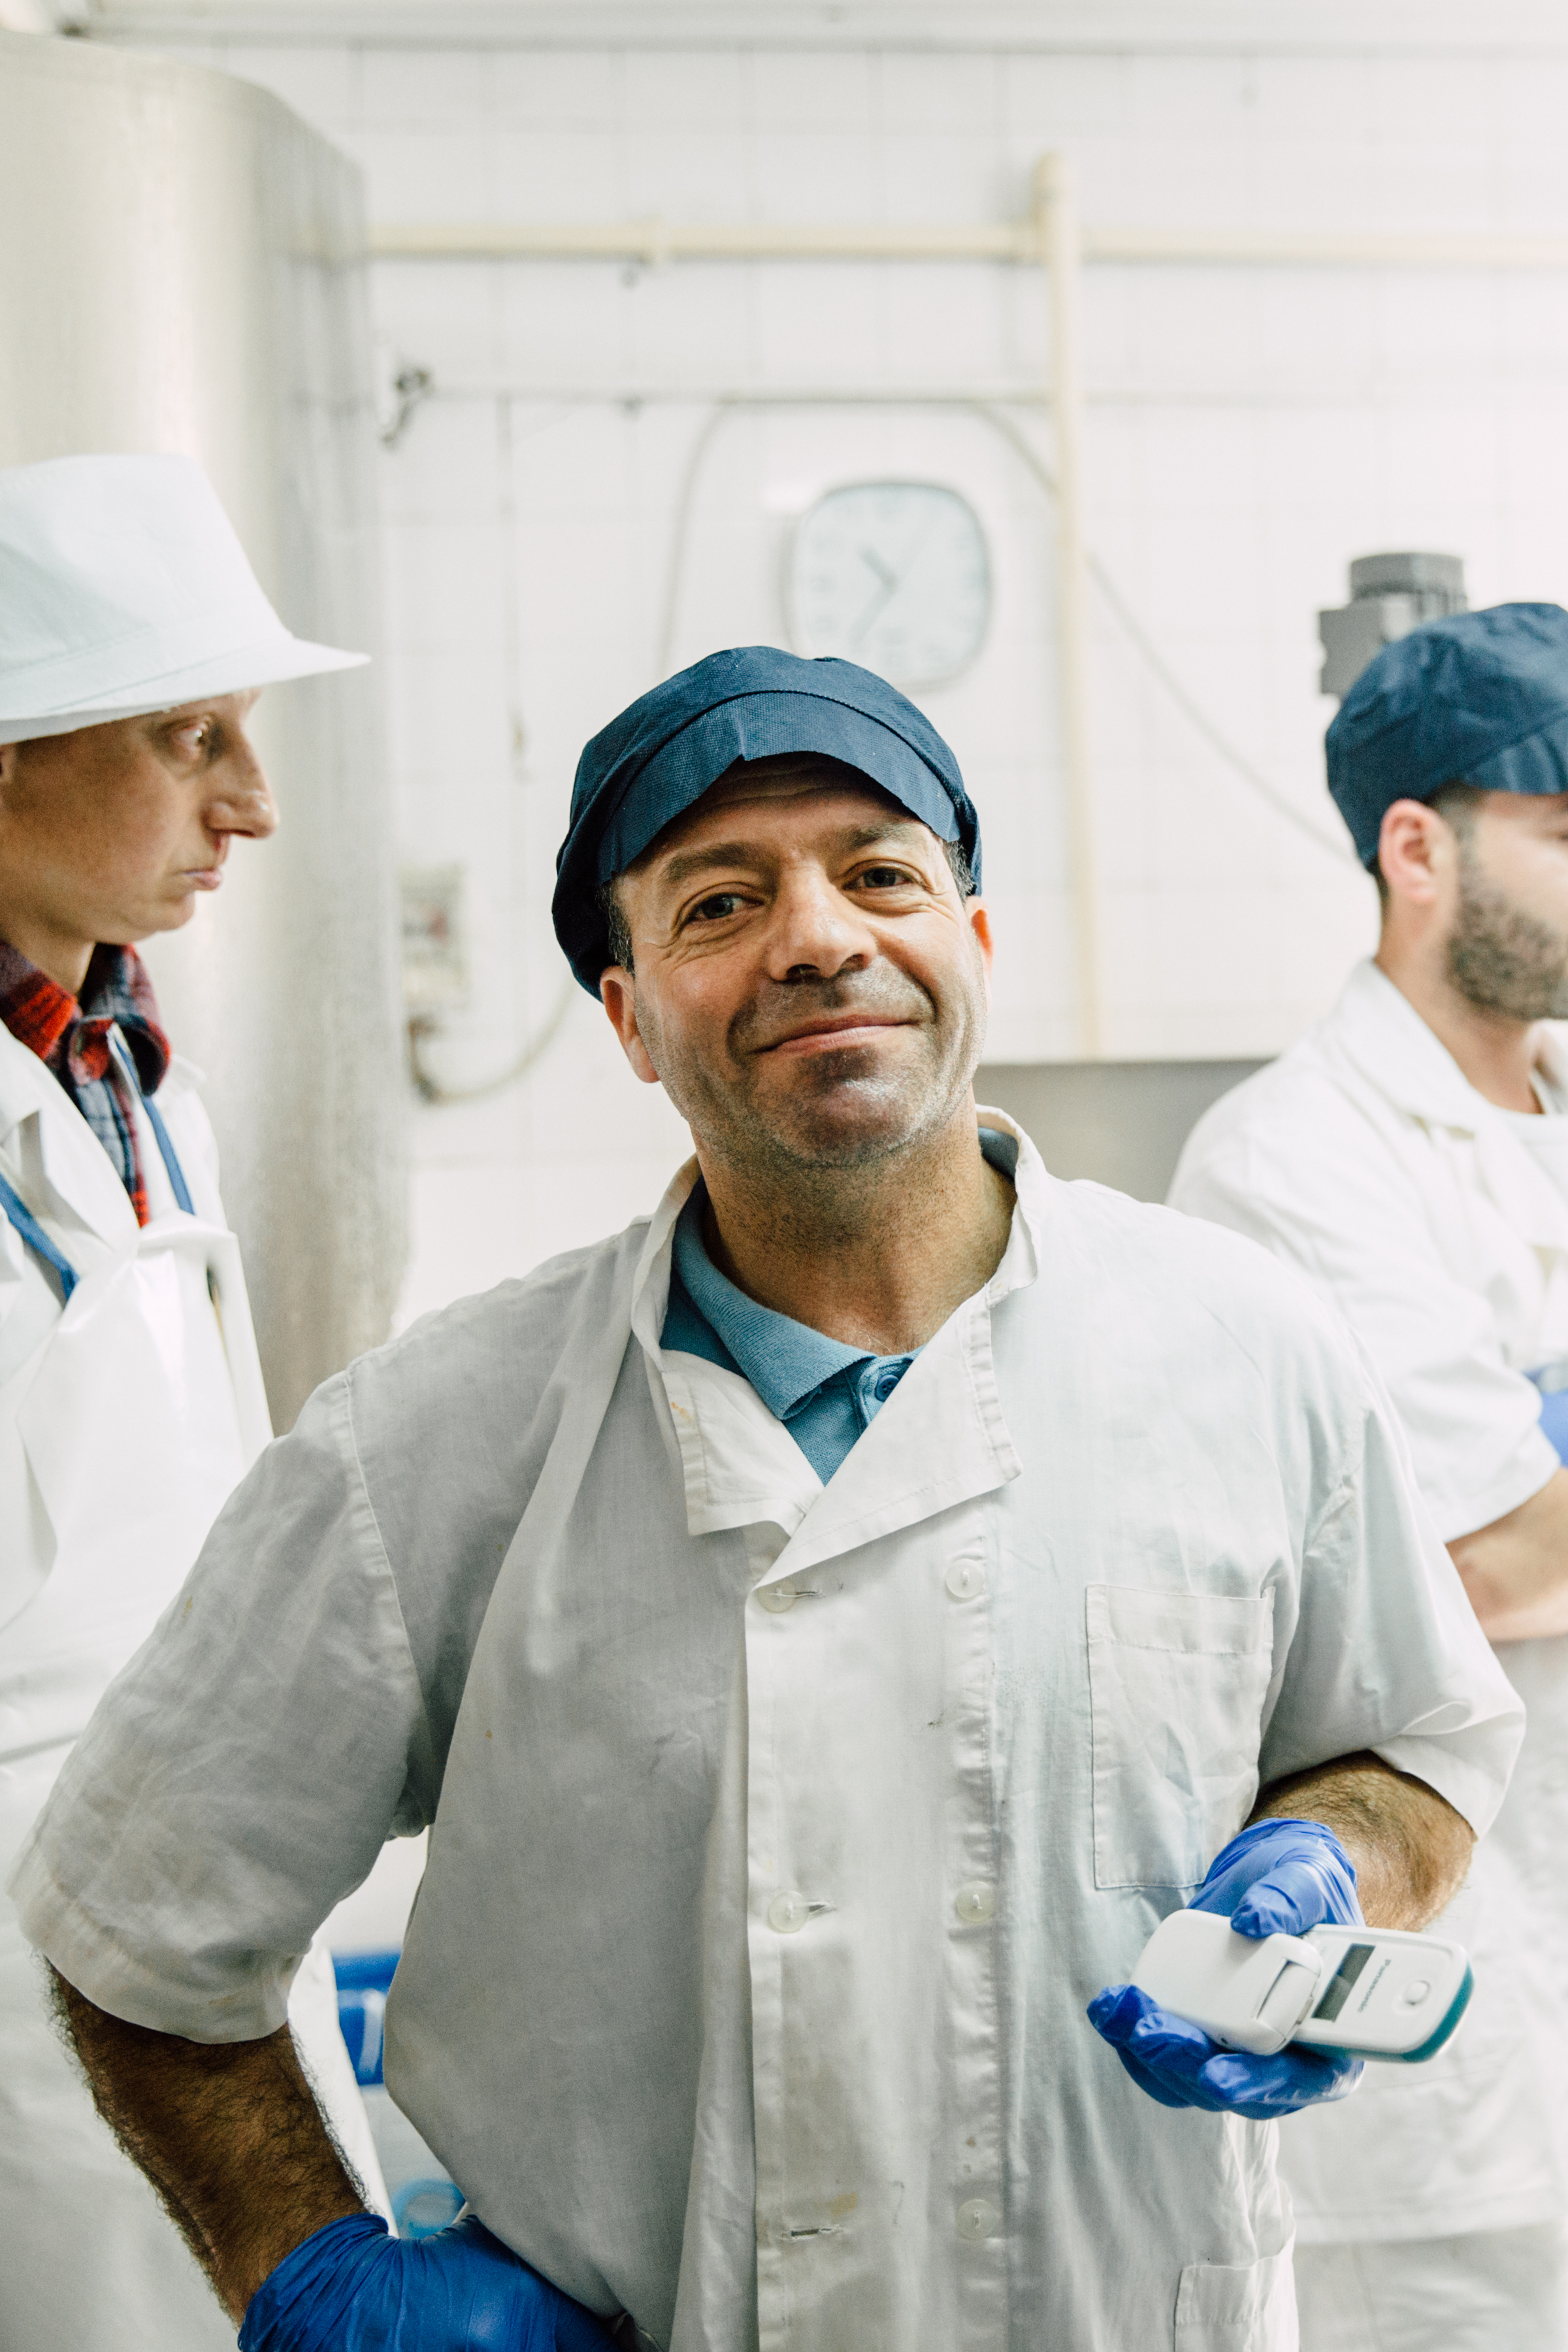 M. Tastanis and his amazing Feta - Panagiotis Tastanis, pictured, is the second of three generations behind Essex Feta. His nephew, Demitri, pictured in many of the make images above, works alongside him in the creamery every day. They make traditional brine-bathed feta, using just sheep's milk from the hills nearby and sea salt from the four hundred year old salt pans at Kalloni.